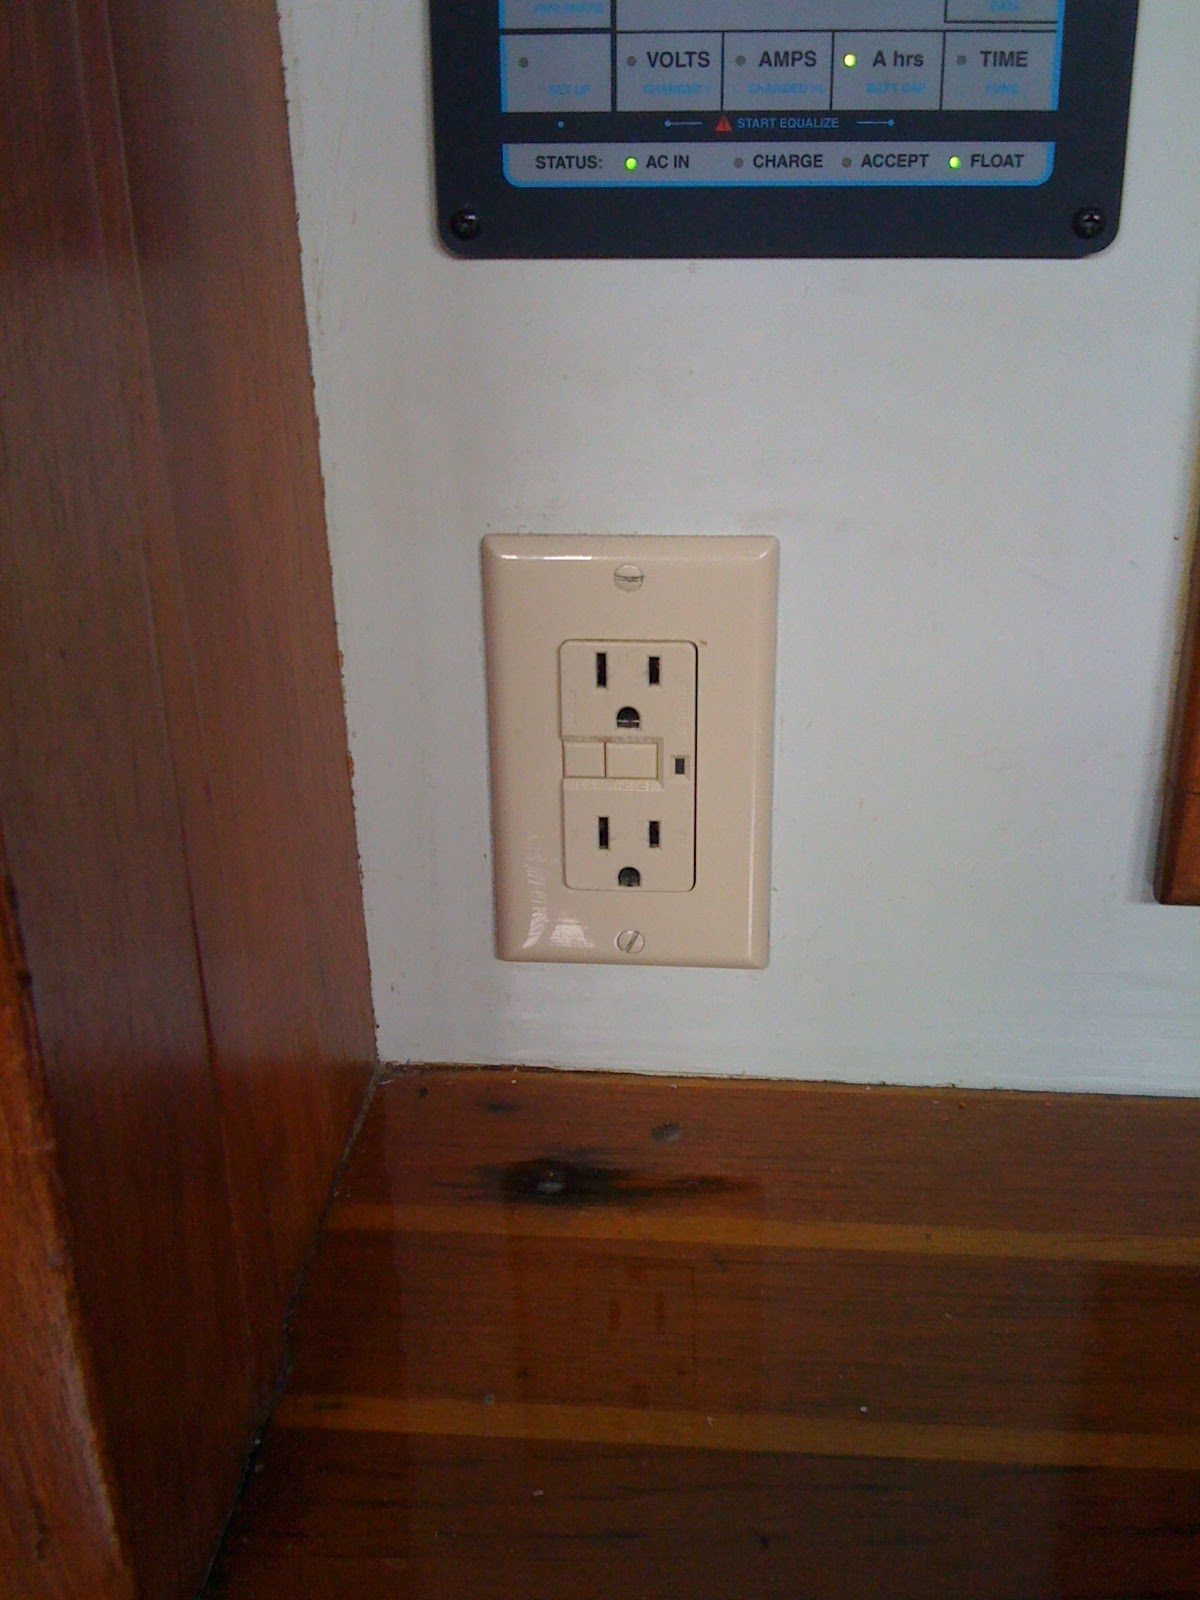 Small Boat Projects Making Life Aboard Easier Gfci Learn How Ground Fault Circuit Interrupters Can Protect Against It Is Not The Normal Shape In Fact A Outlet Those Initials Stand For Interrupter And They Could Save